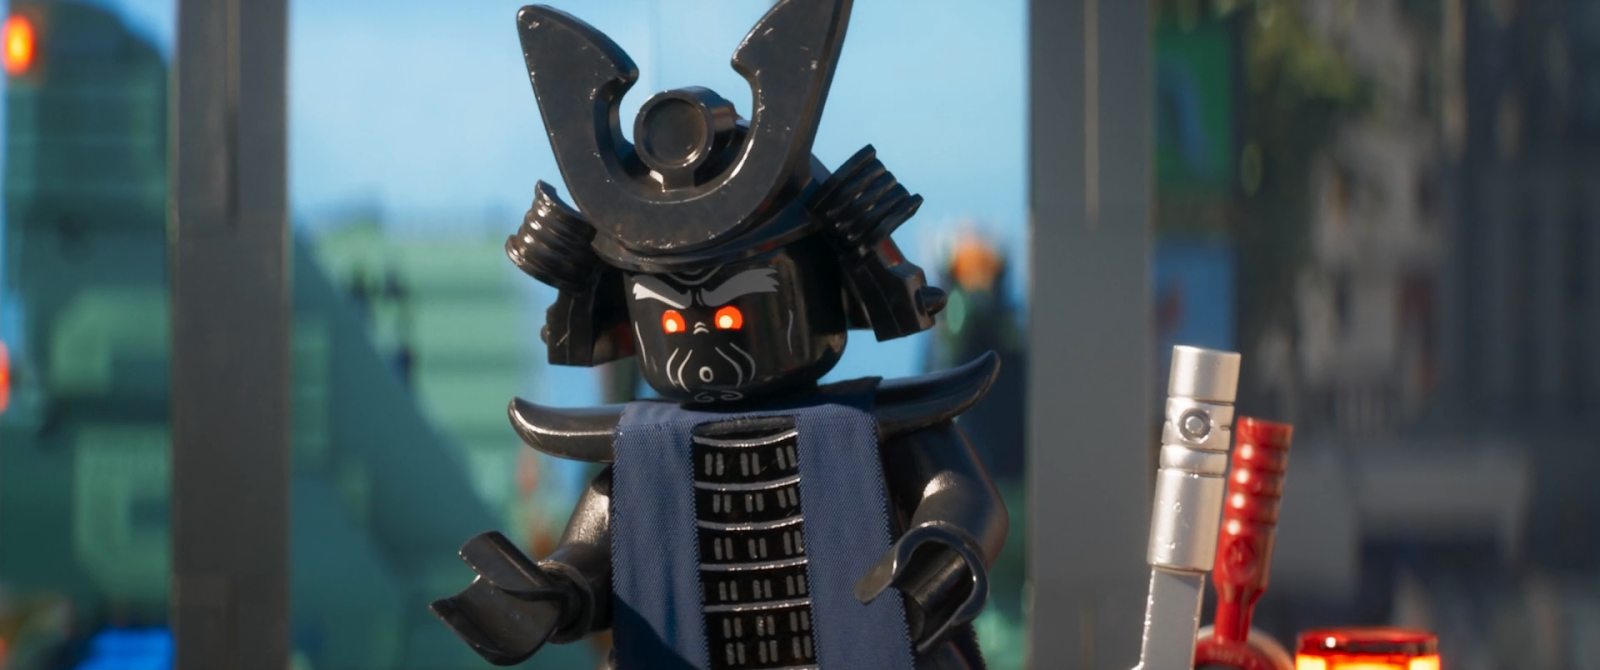 Lego Ninjago: La película (2017) BRRip 1080p Latino - Ingles captura 1